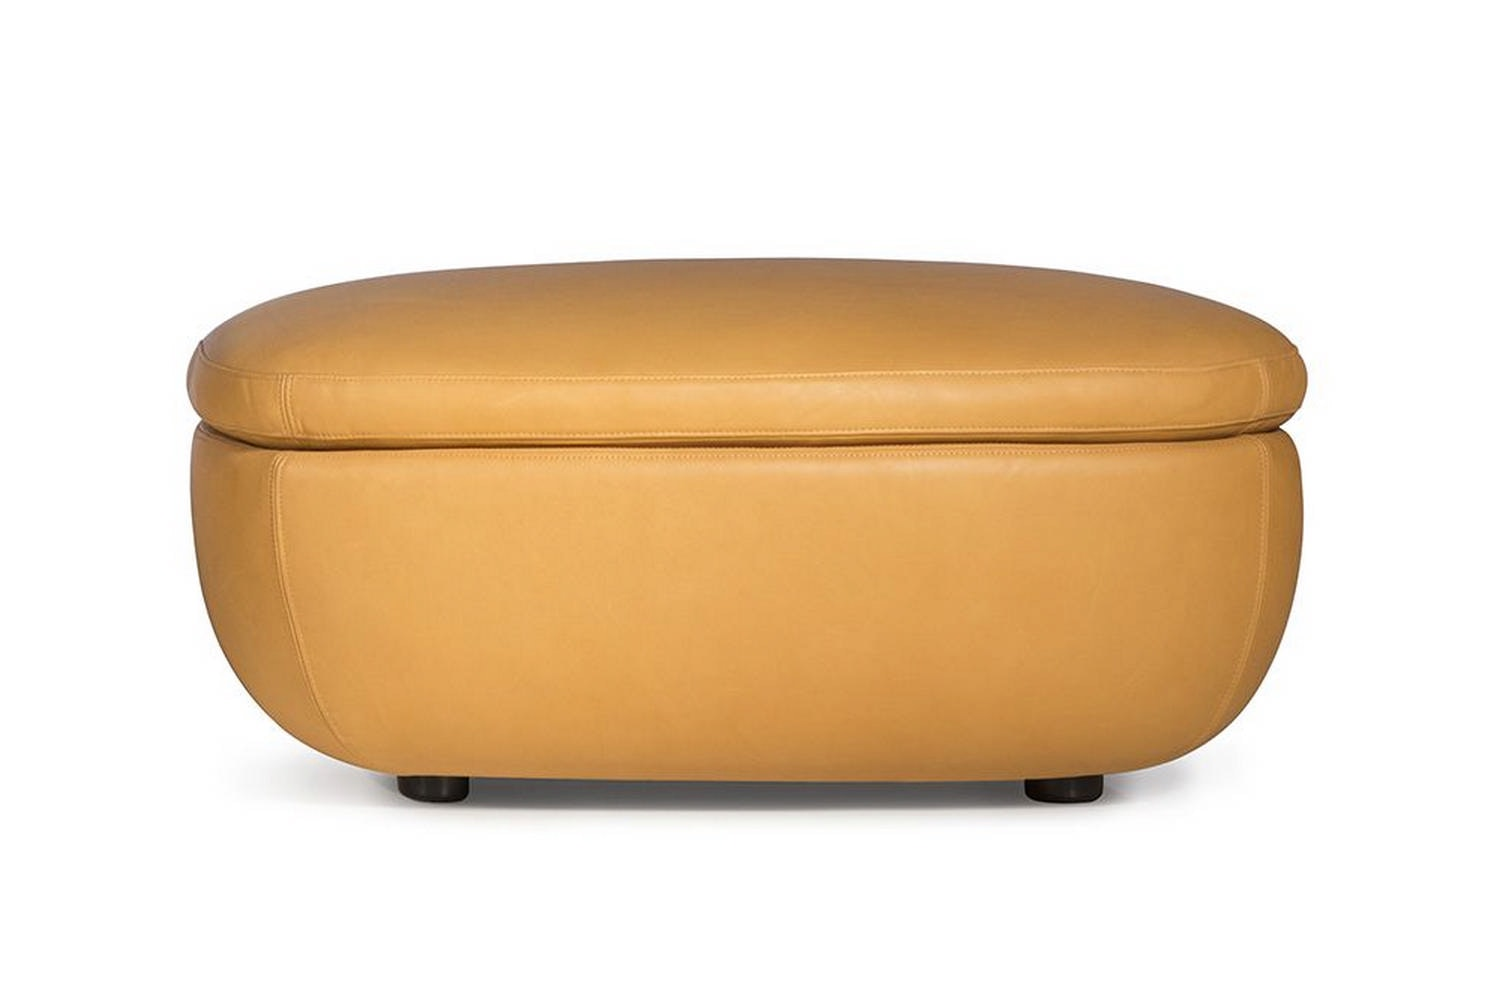 Bart Footstool by Moooi Works / Bart Schilder for Moooi